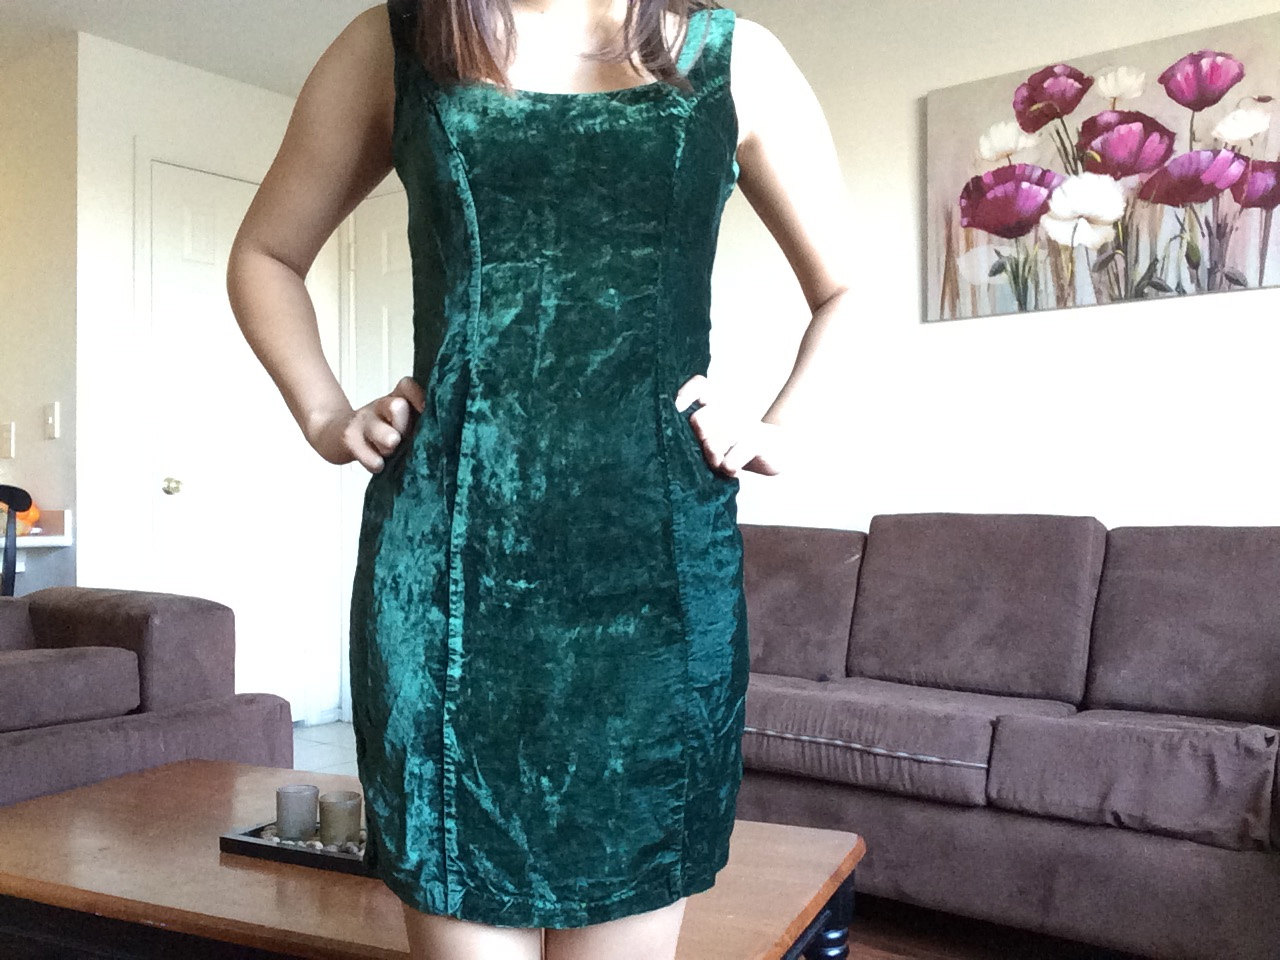 Rare vintage 80's dark green crushed velvet betsy johnson body con dress: punk label